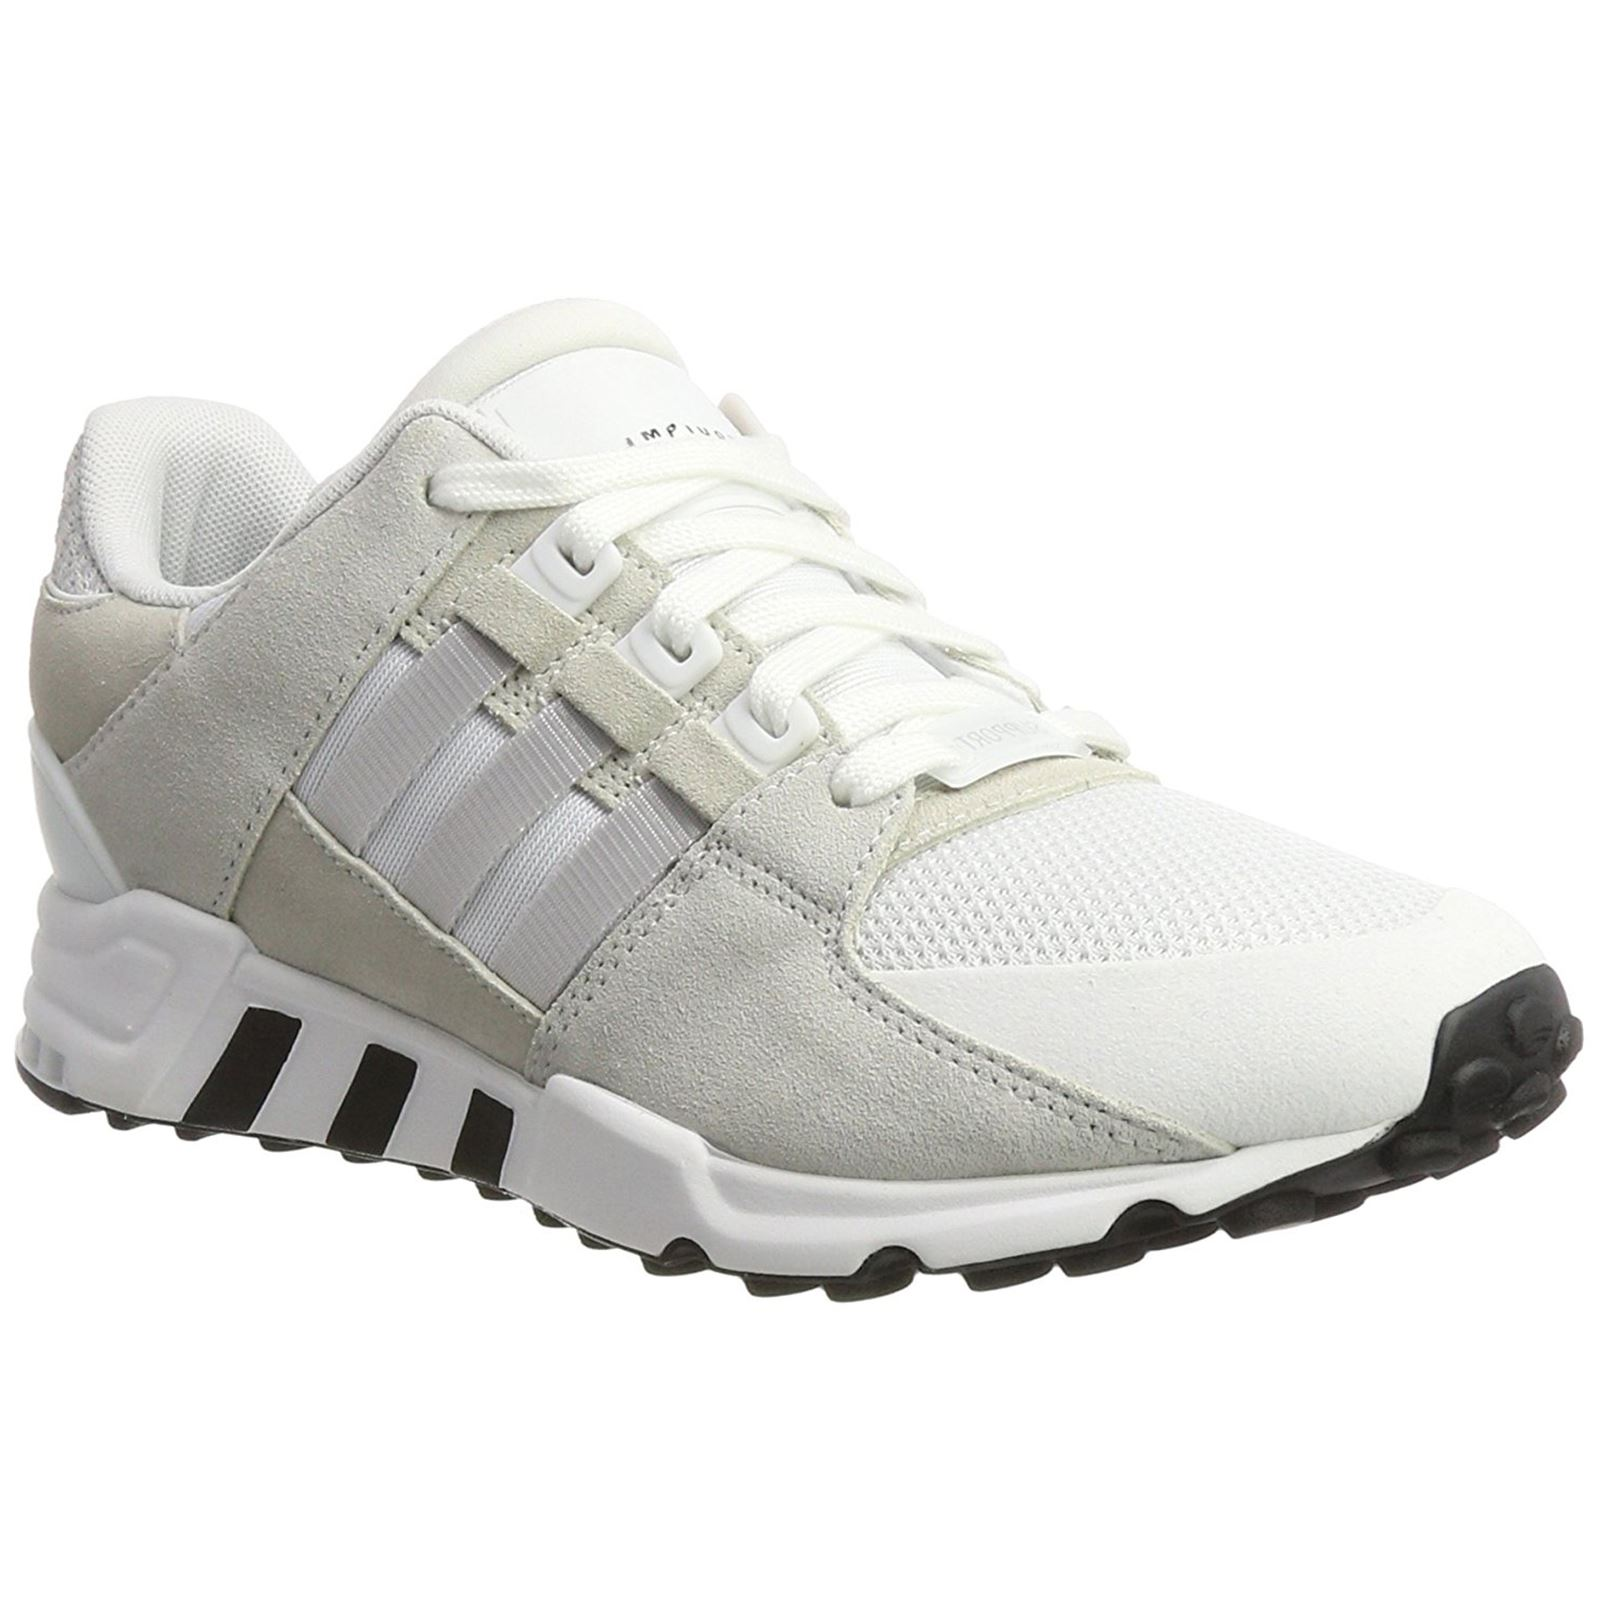 60abd21456c6b Adidas EQT Support RF Footwear White Grey One Mens Mesh Suede Low-tops  Trainers